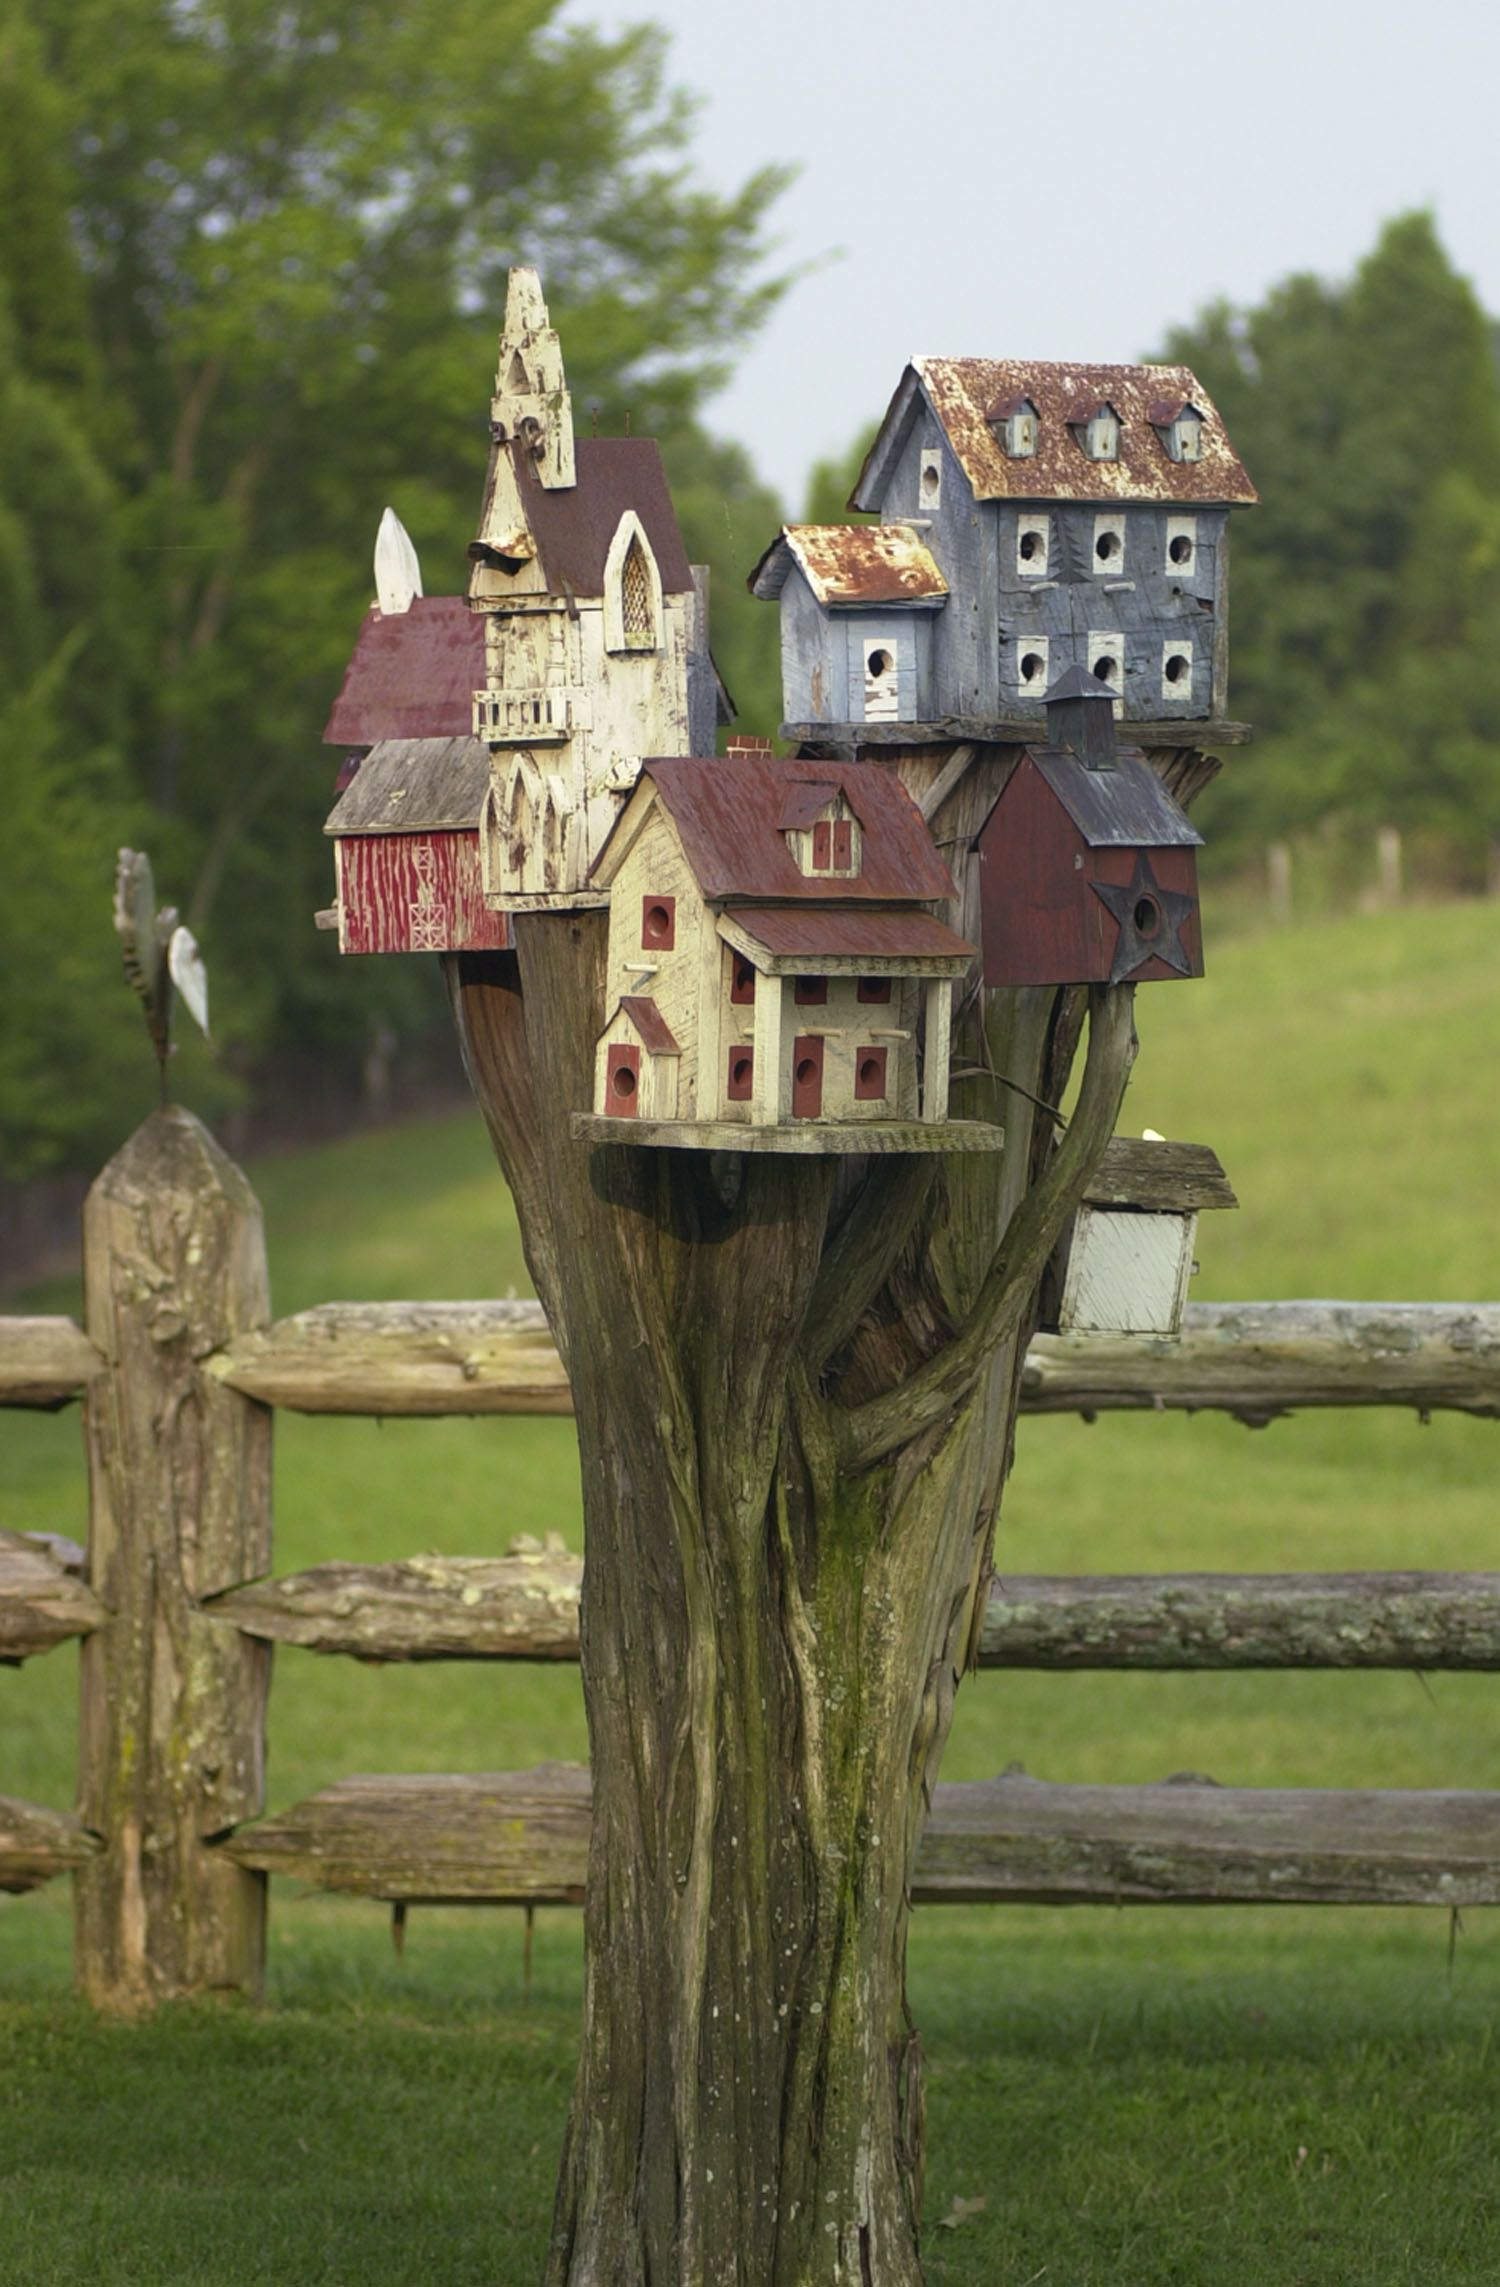 Oh My Goodness Awesome Birdhouse My Cottage Garden Bird Houses Wooden Bird Houses Bird House